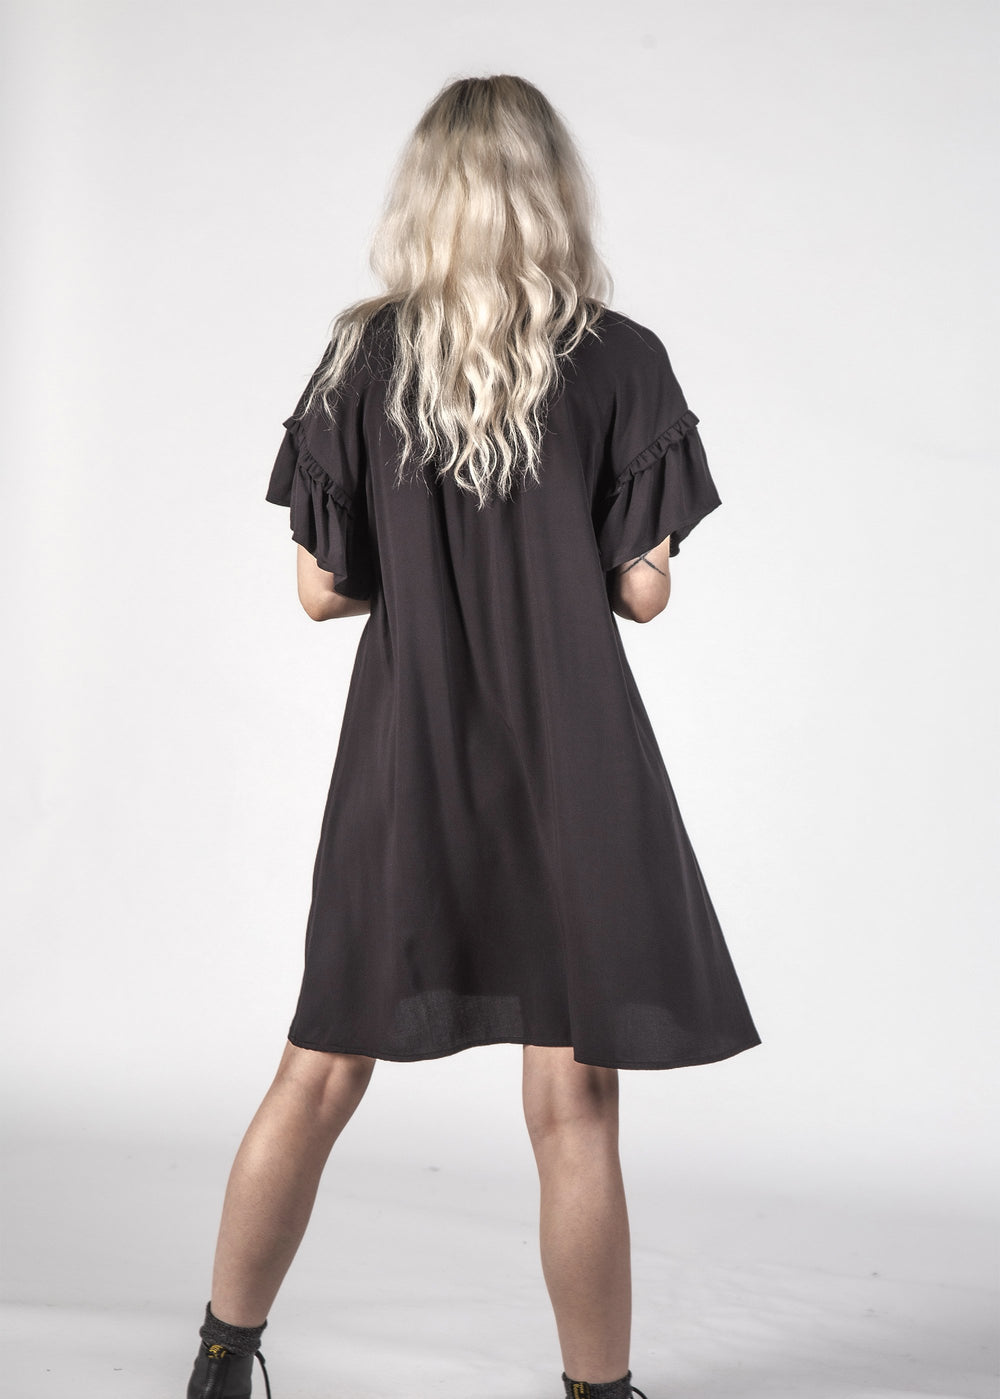 EVIE DRESS - BLACK